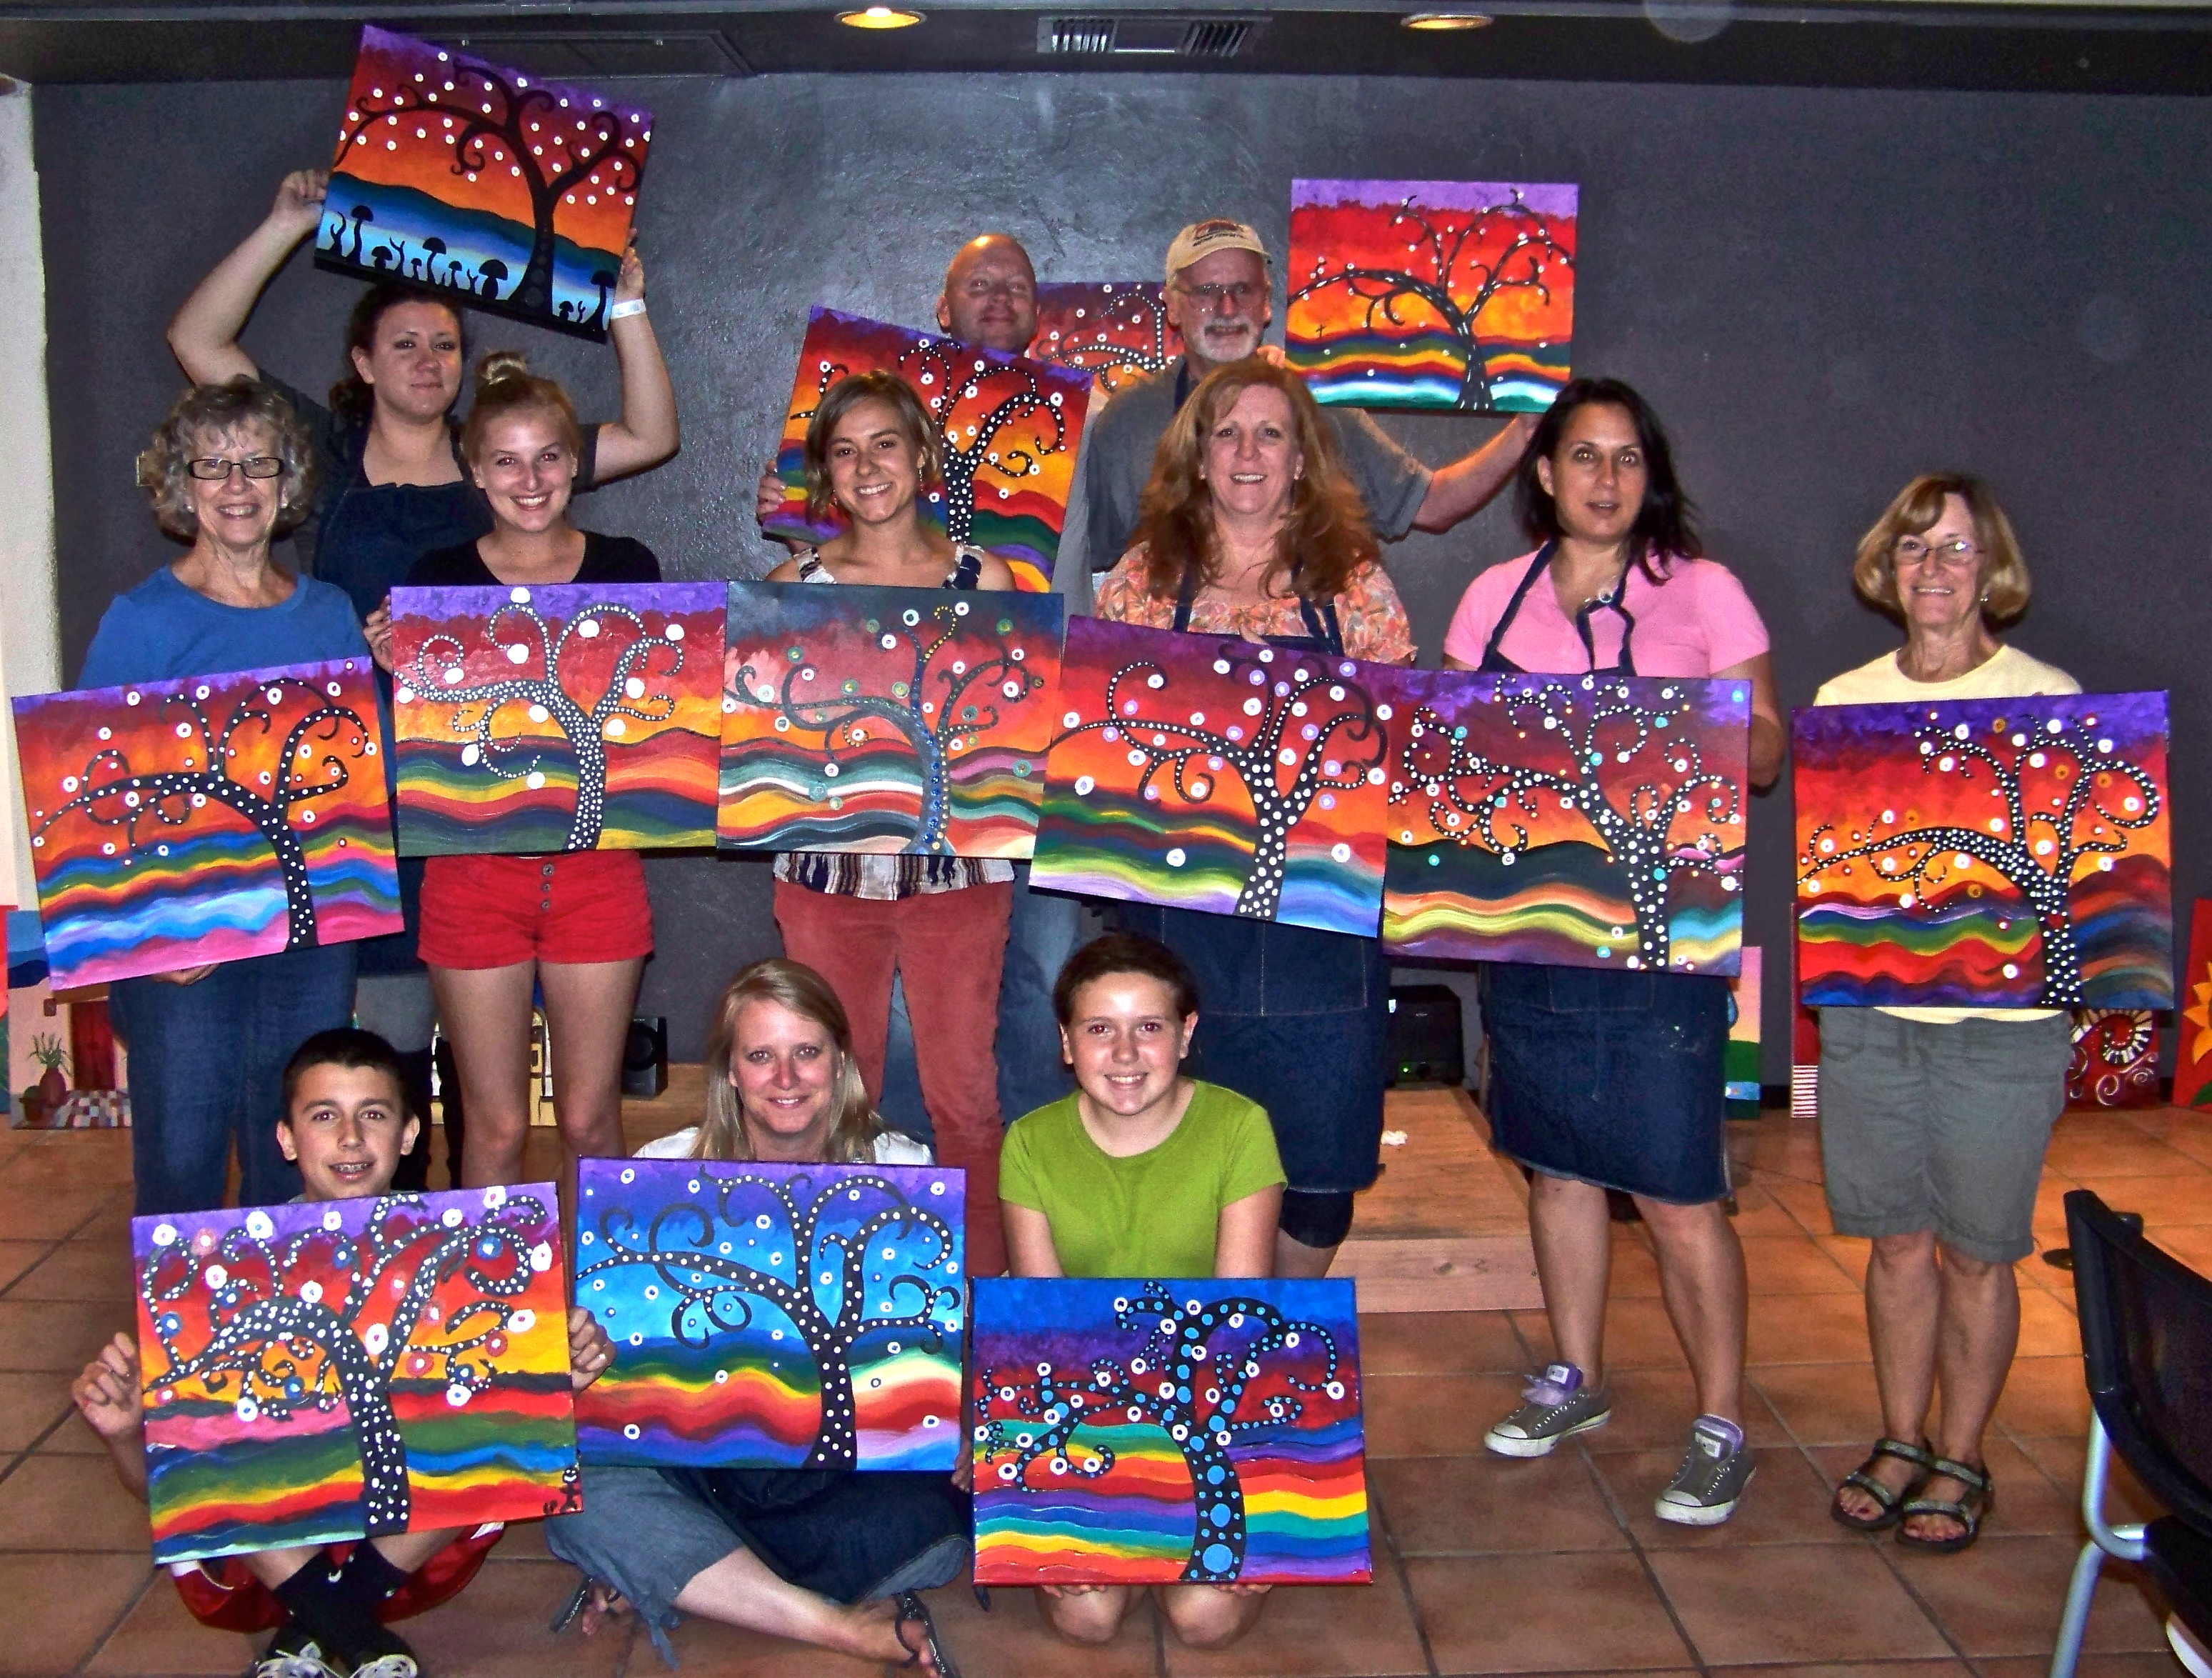 Creative juice art bar fun painting classes in tucson for Group craft projects for adults